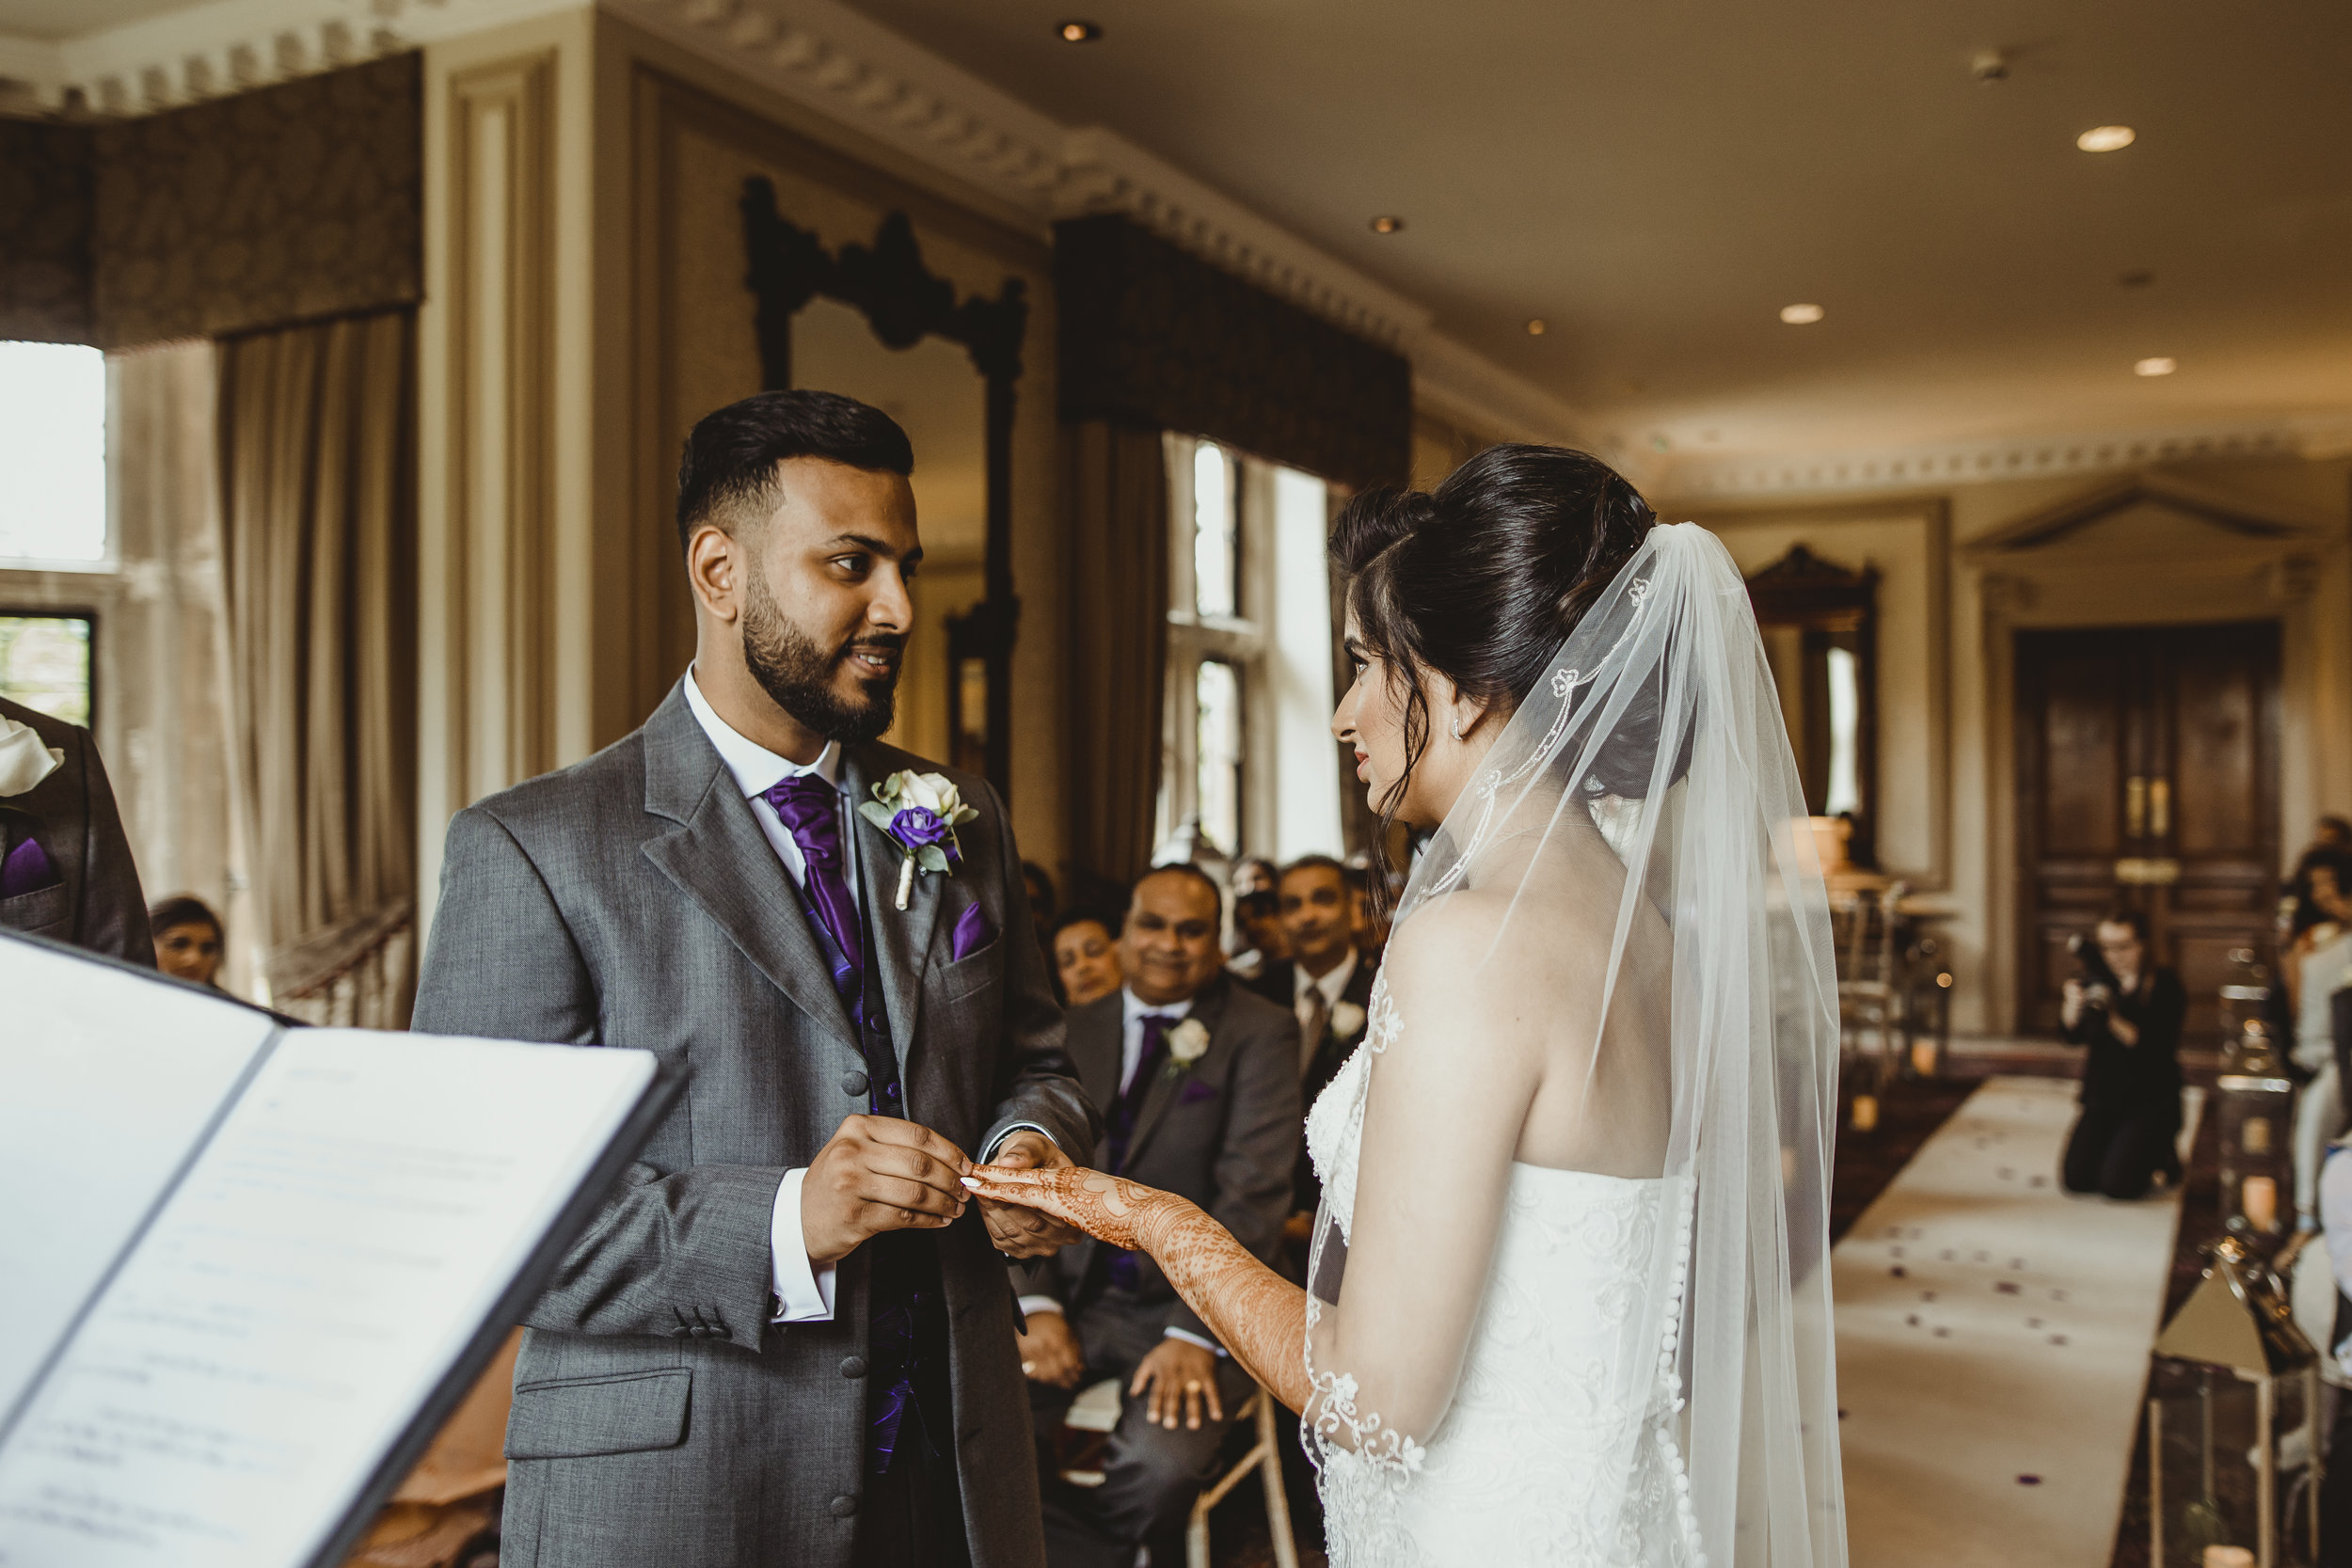 N&J_MILTON_KEYNES_WEDDING_LONDON_PHOTOGRAPHER_ASIAN_WEDDING-401.JPG